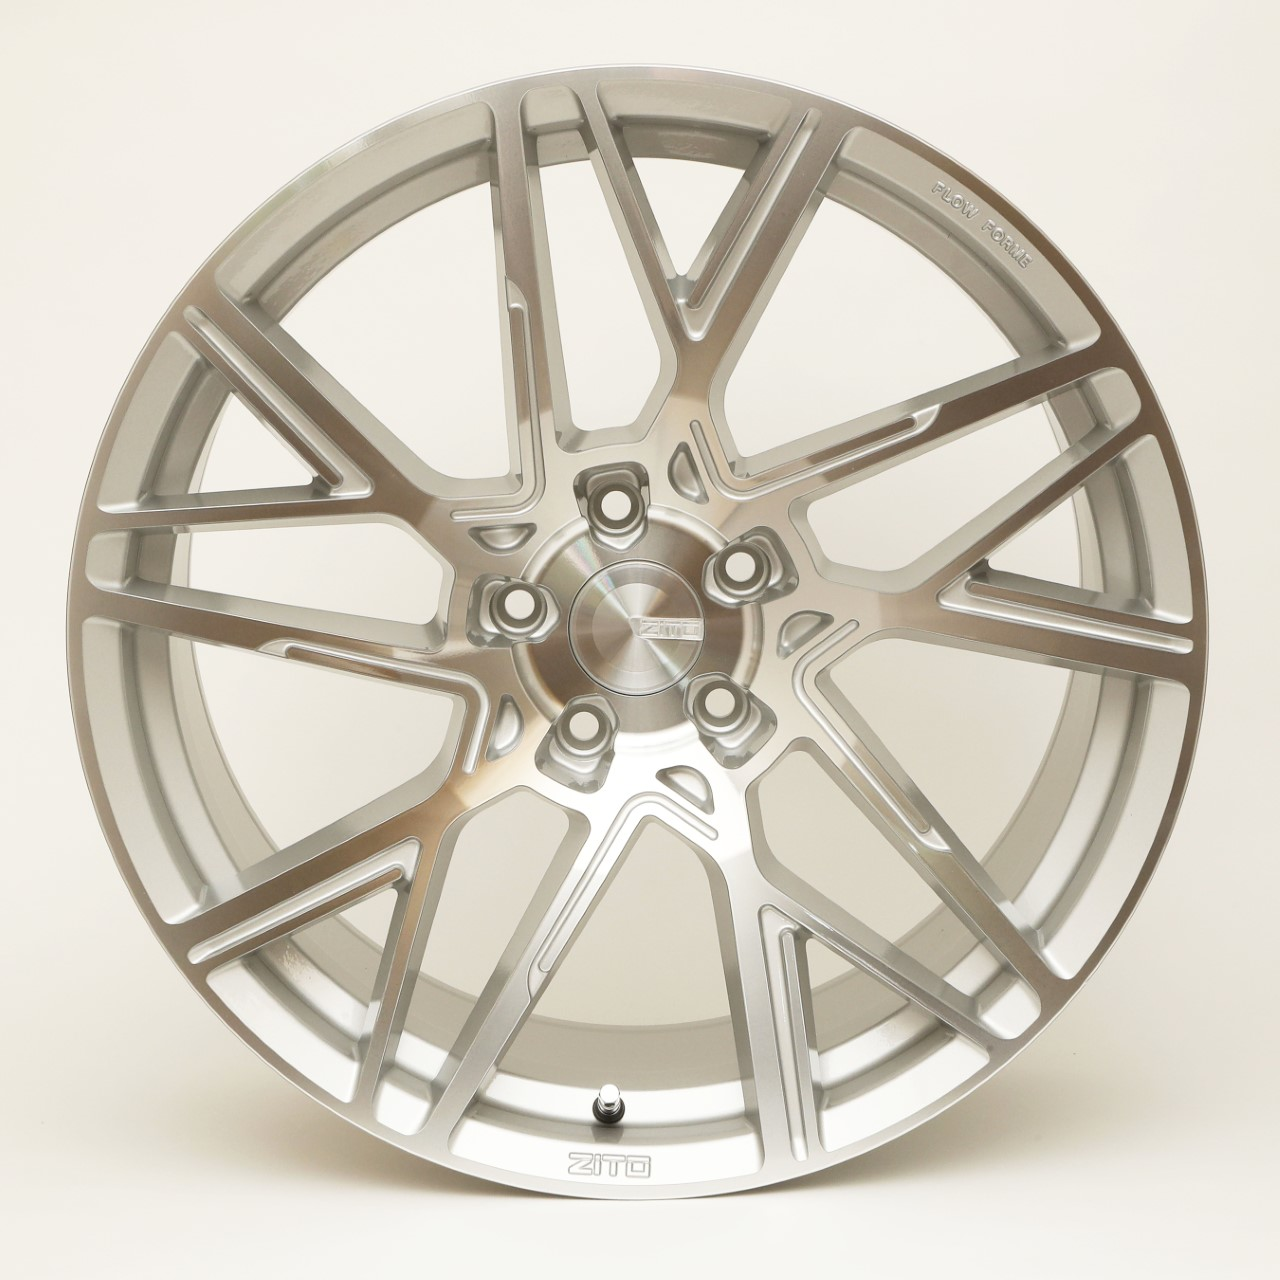 "NEW 20"" ZITO ZF-X FLOW FORMED ALLOY WHEELS IN SILVER WITH POLISHED FACE WITH DEEPER CONCAVE 10"" REAR"